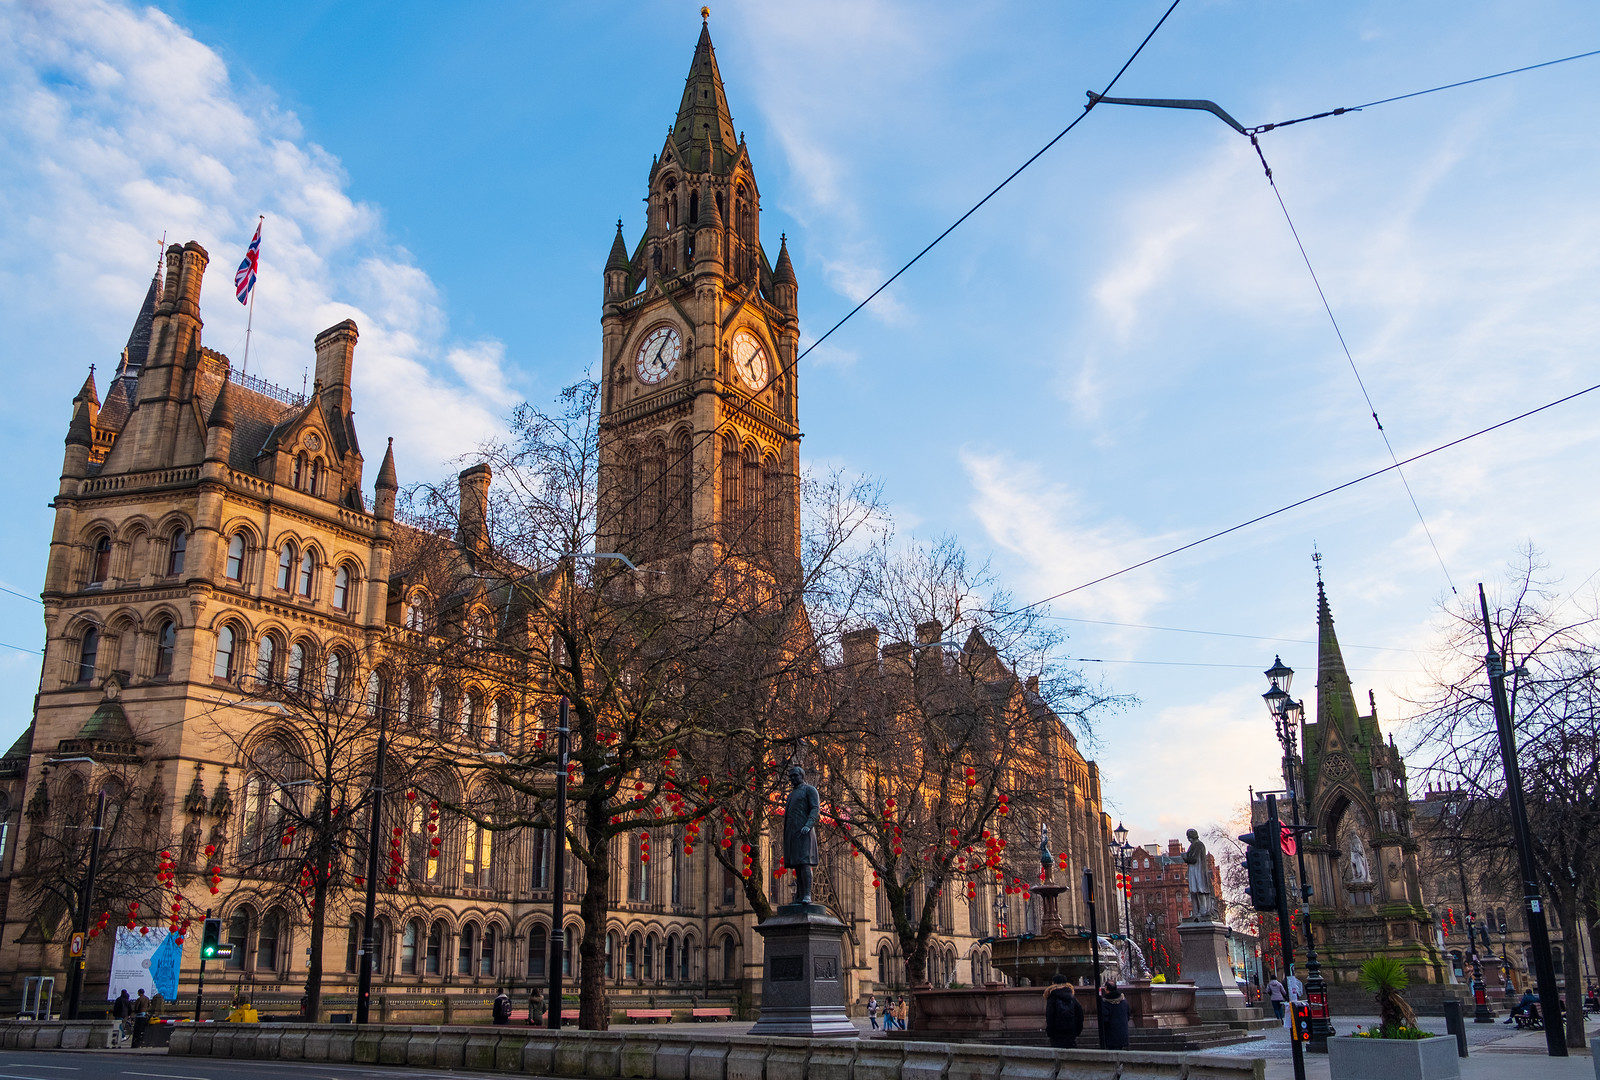 What exactly you can now be fined £100 for in Greater Manchester under new legislation, The Manc